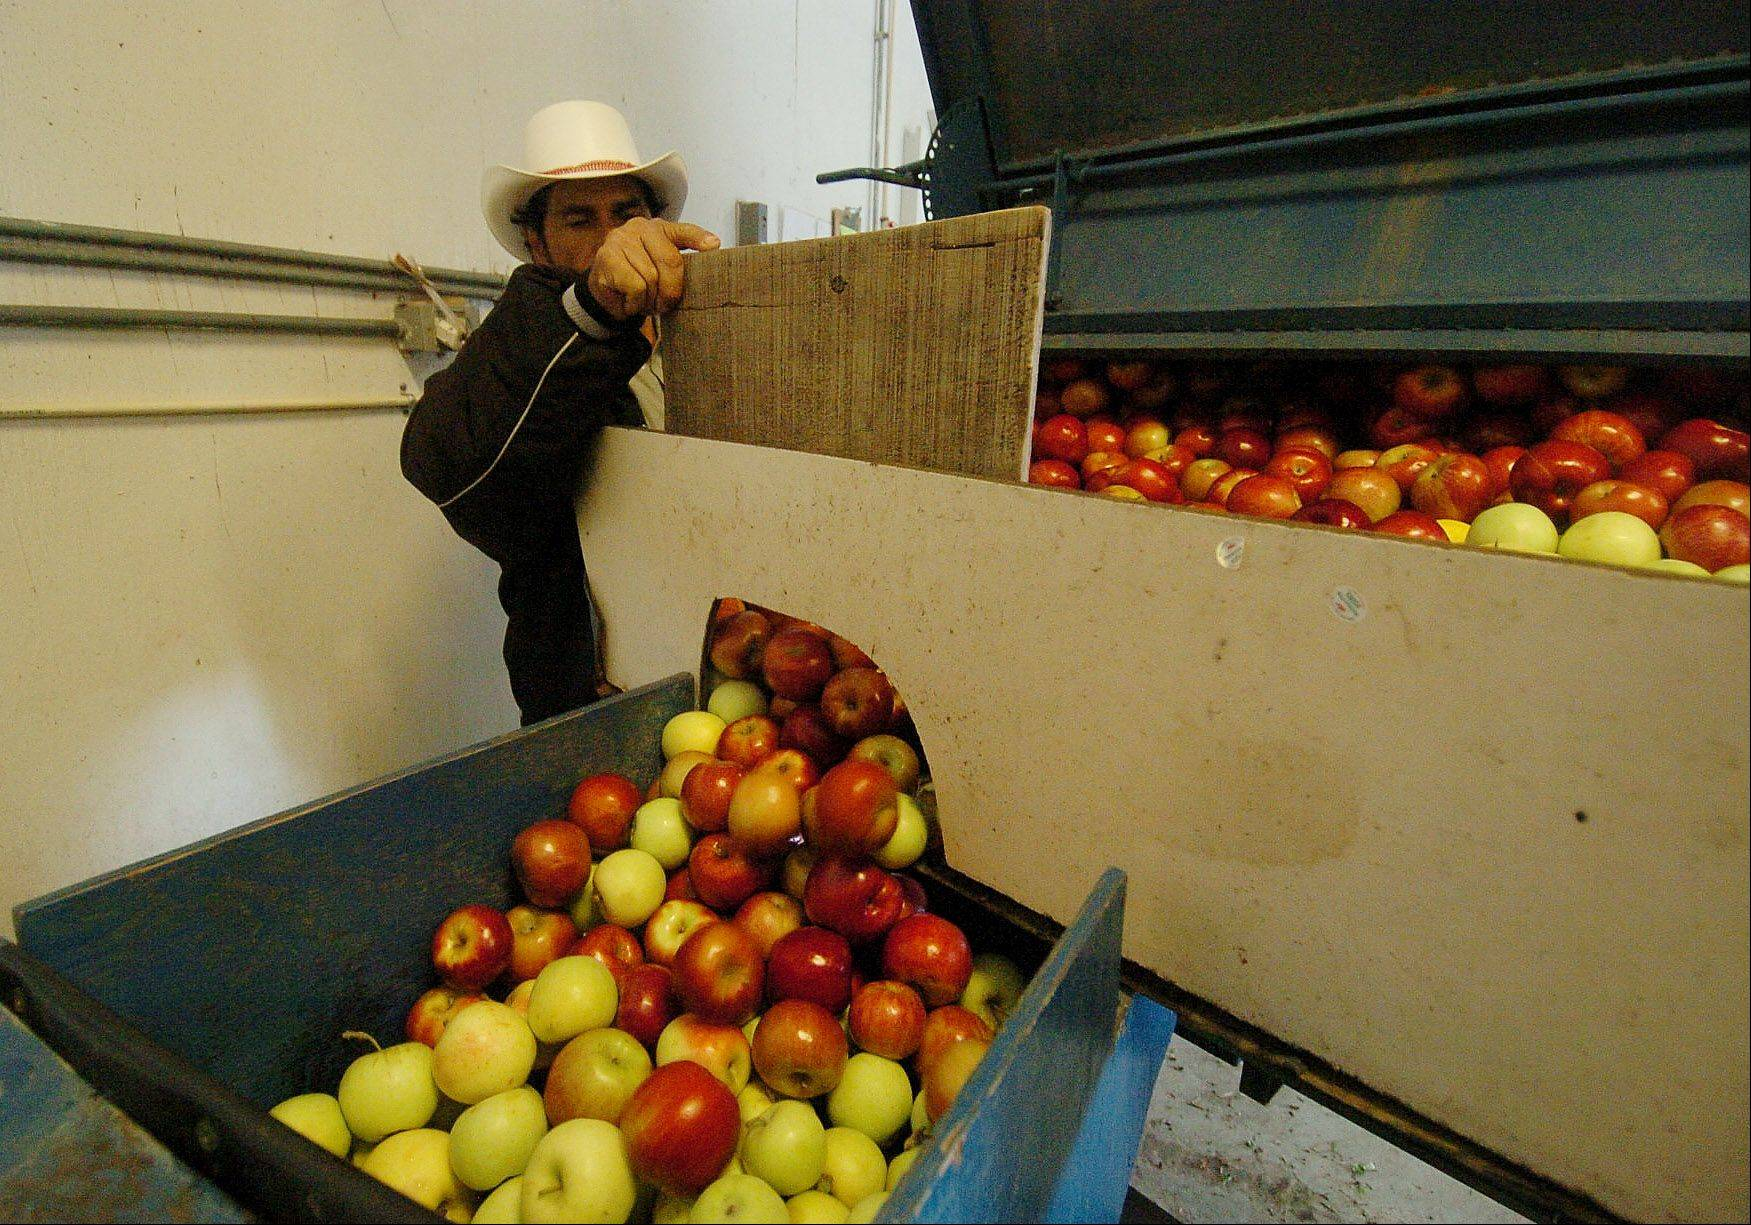 Alfonso Umana loads the apple washer with apples to be washed and processed into apple cider at Kuipers Family Farm in Maple Park.